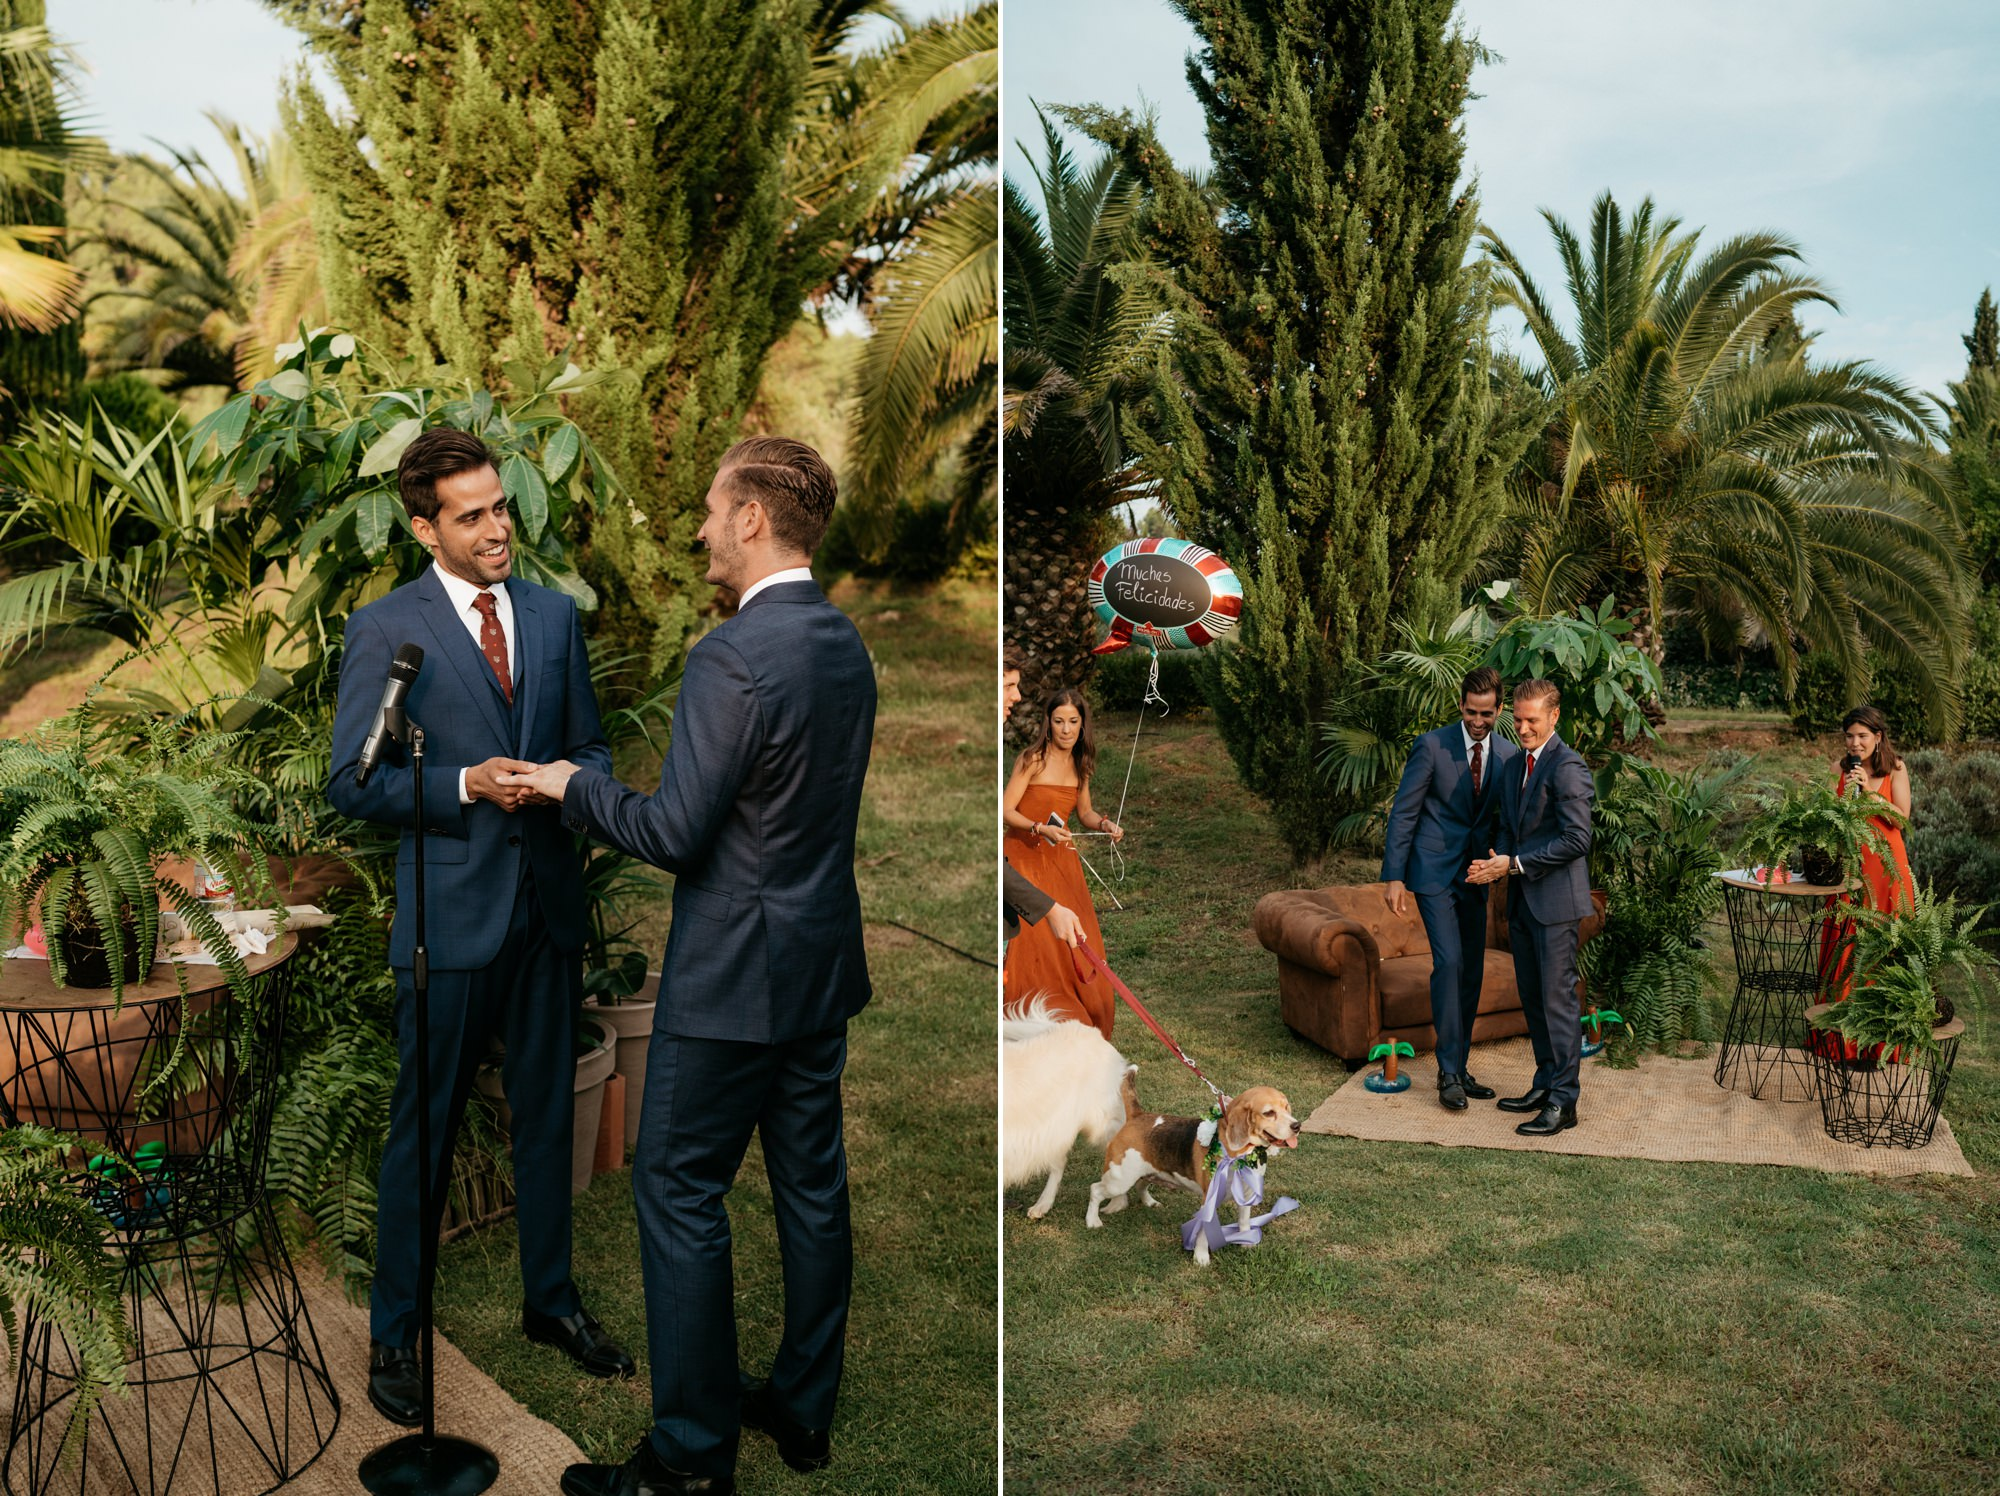 natural wedding photo barcelona alex y oscar 0185 1